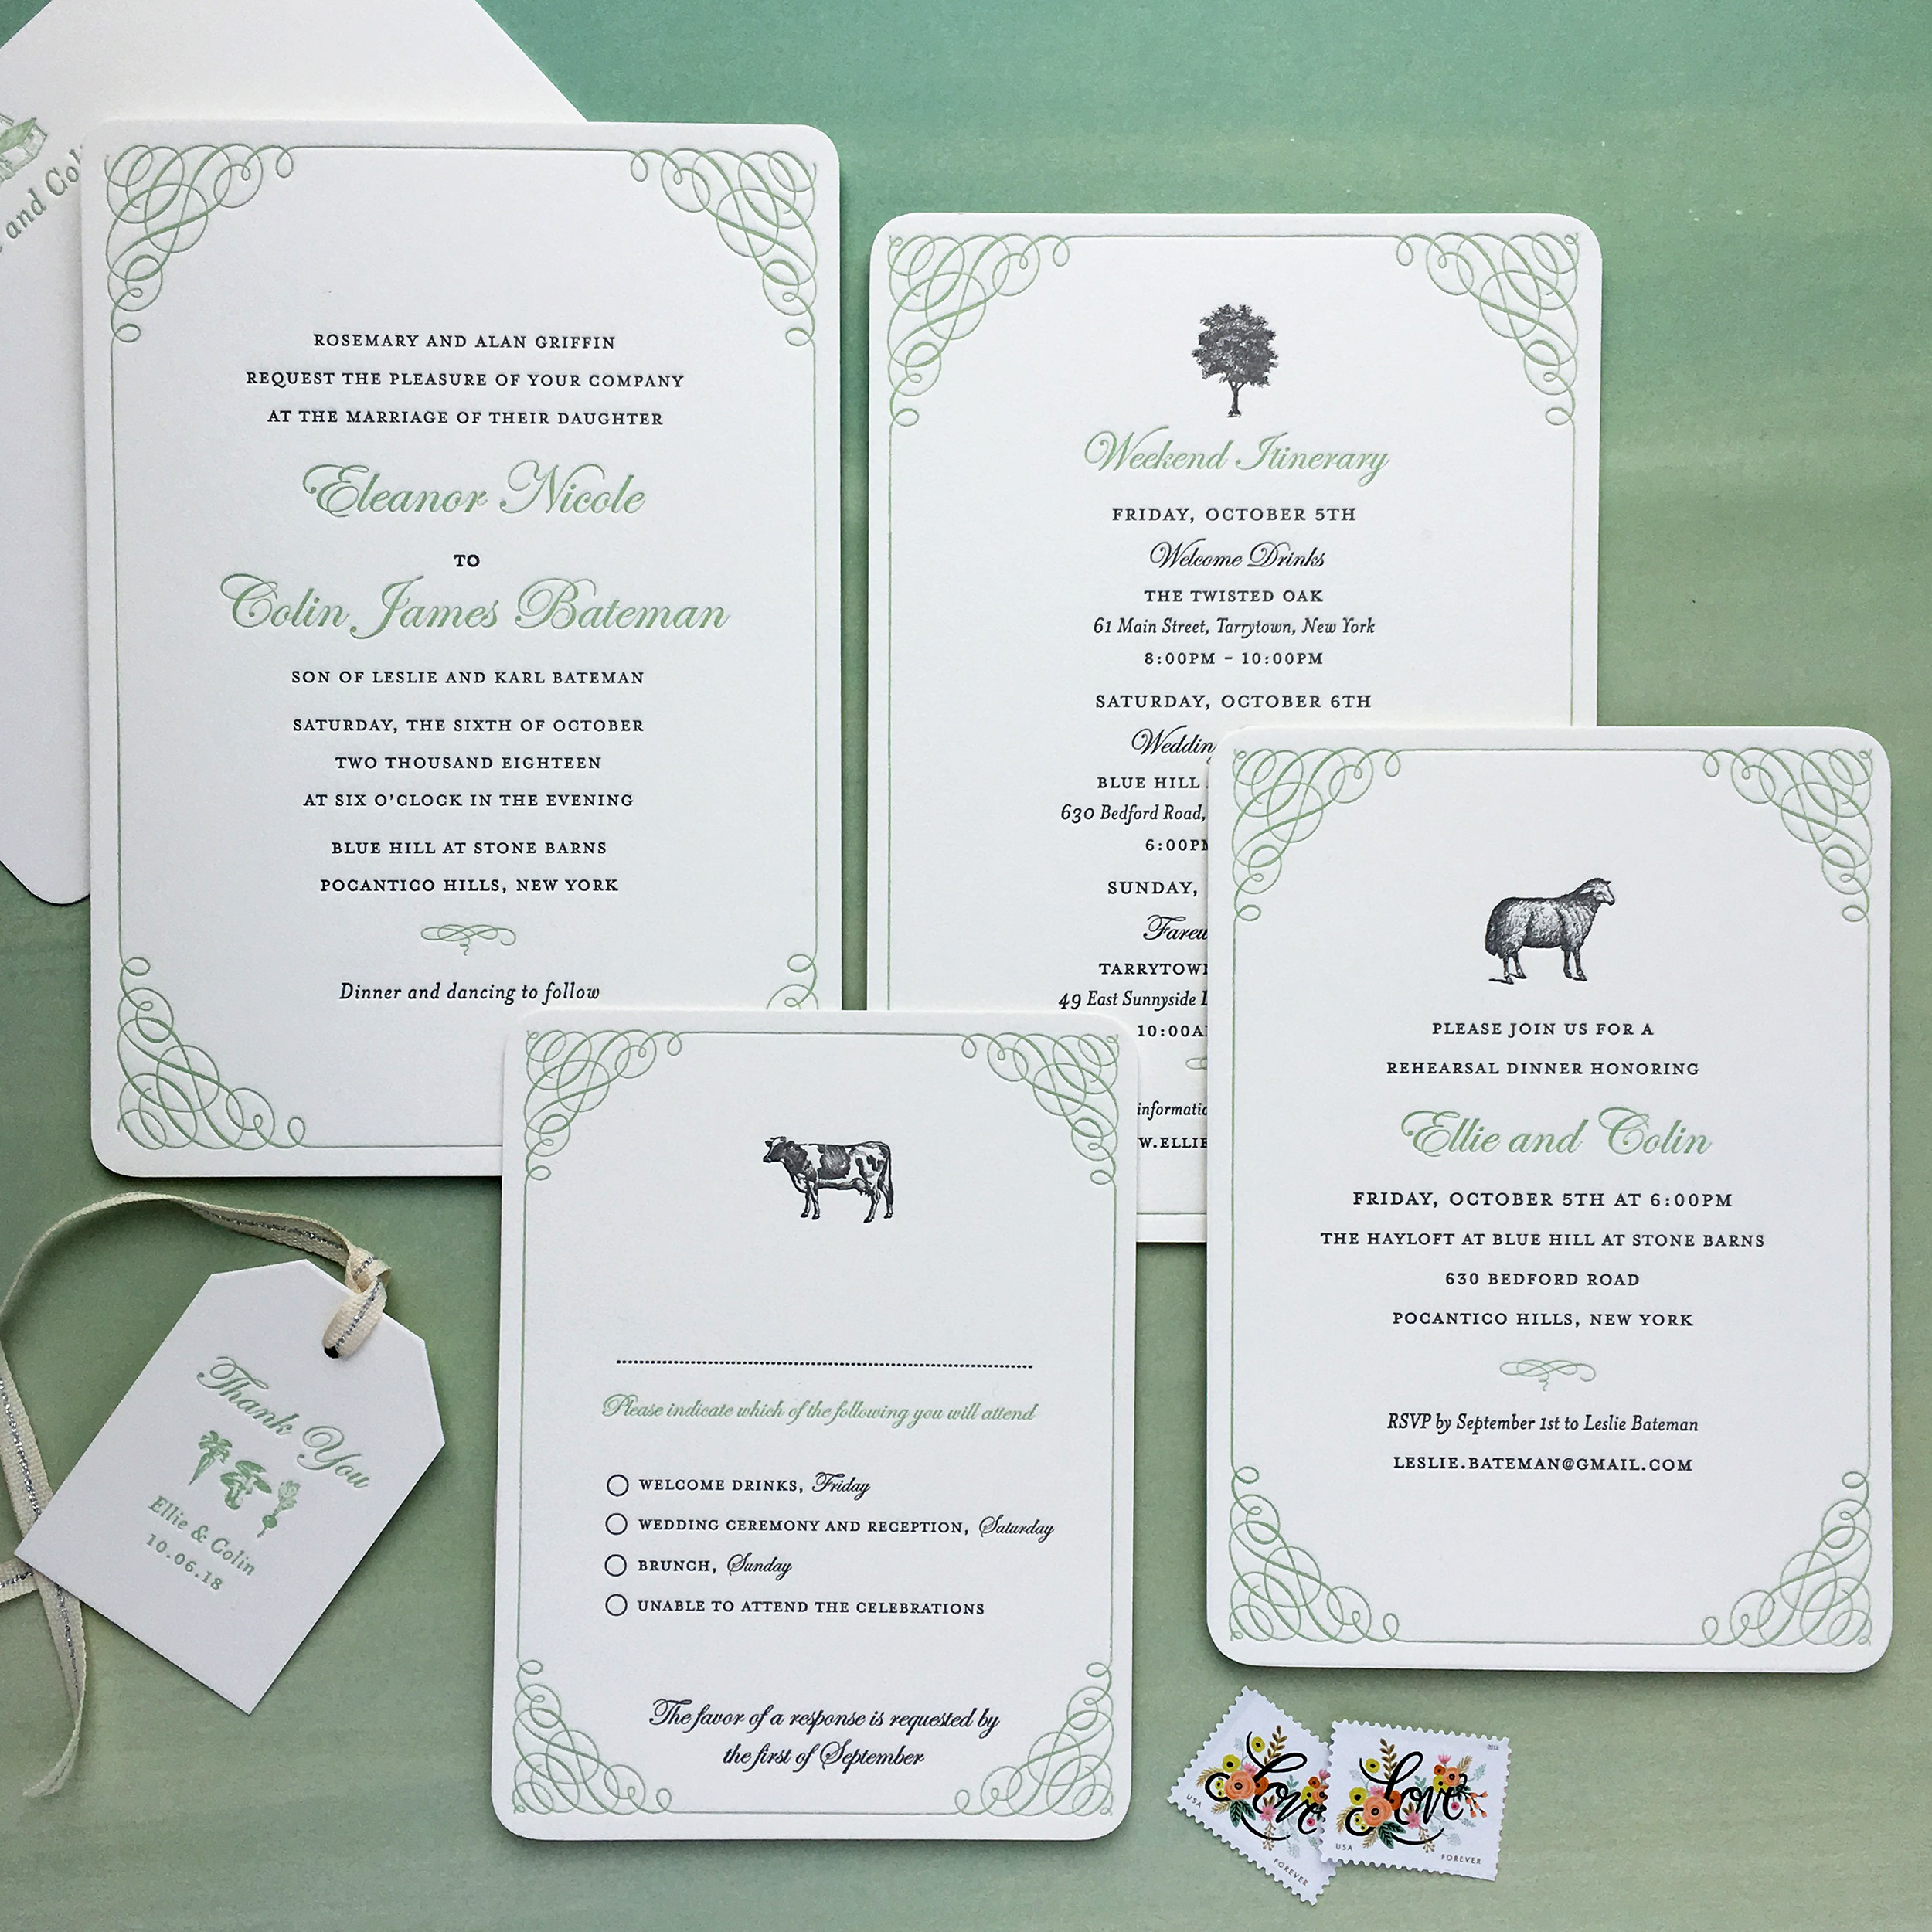 Sage_Scrolling-Frame-Letterpress-Wedding-Invitation.jpg